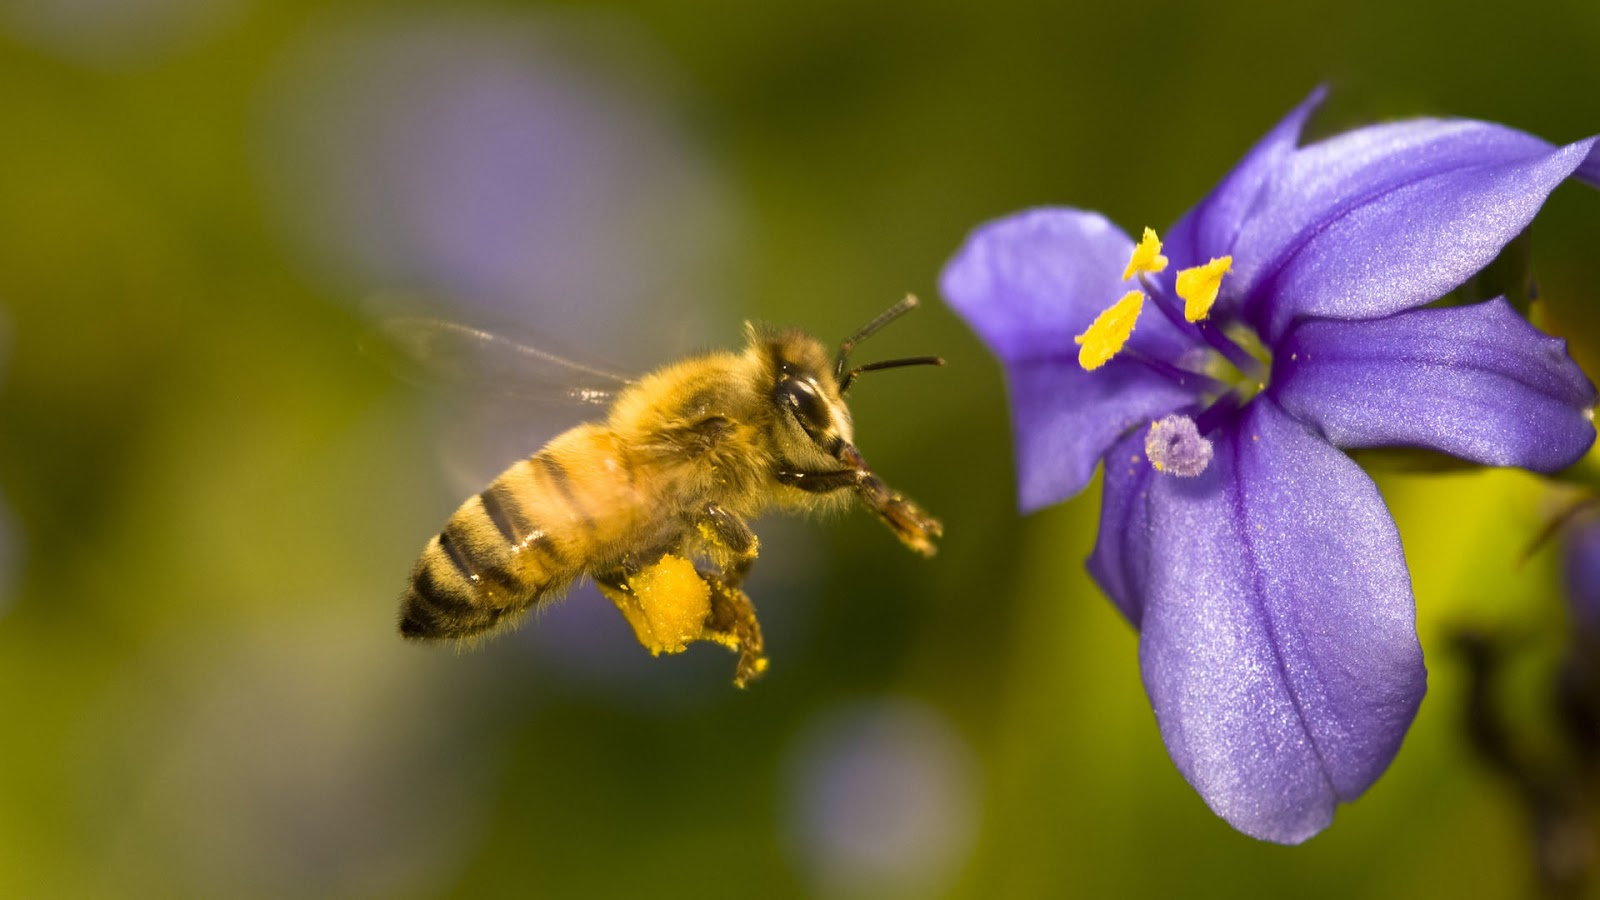 Honey-Bee-collecting-food-from-flowers-Images.jpg